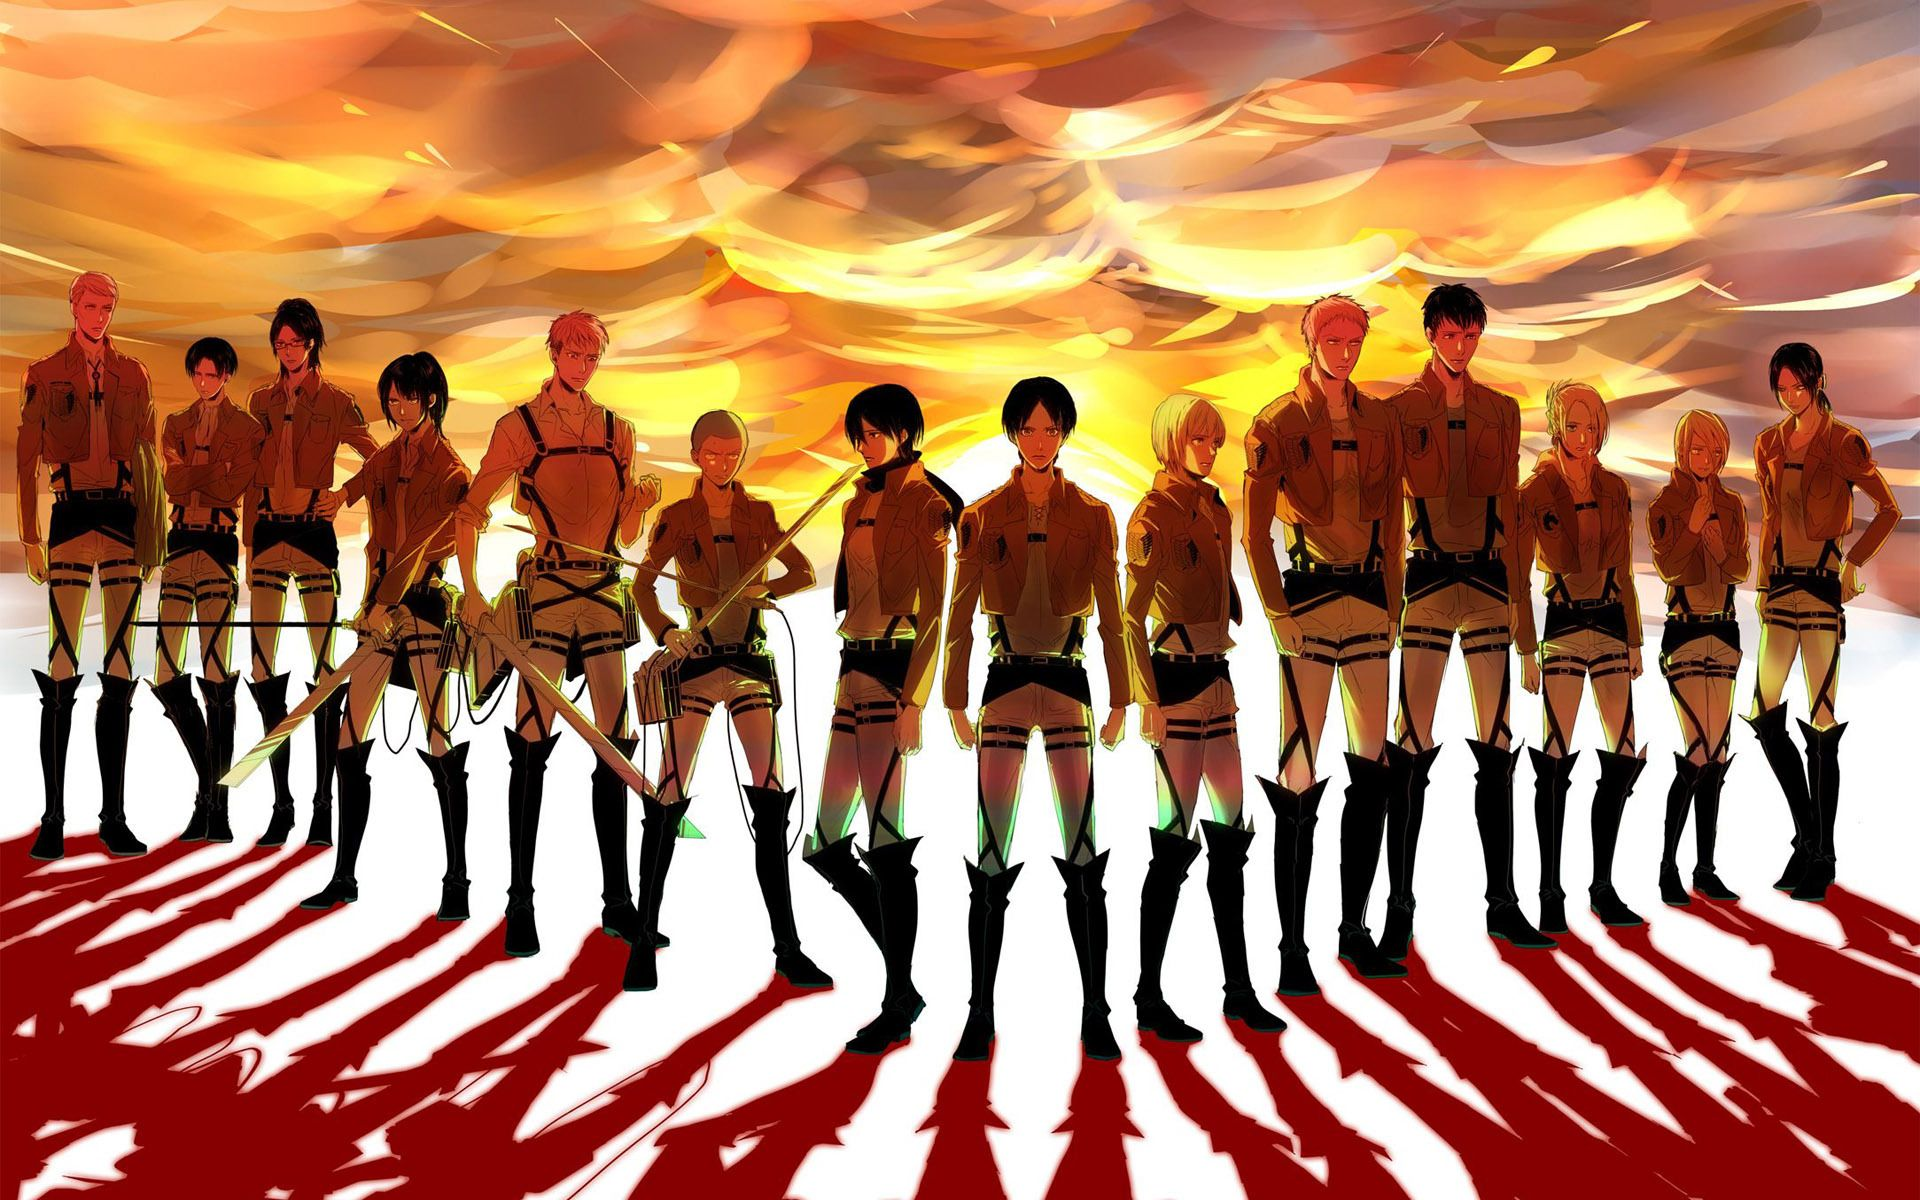 Attack On Titan Desktop Wallpapers Top Free Attack On Titan Desktop Backgrounds Wallpaperaccess